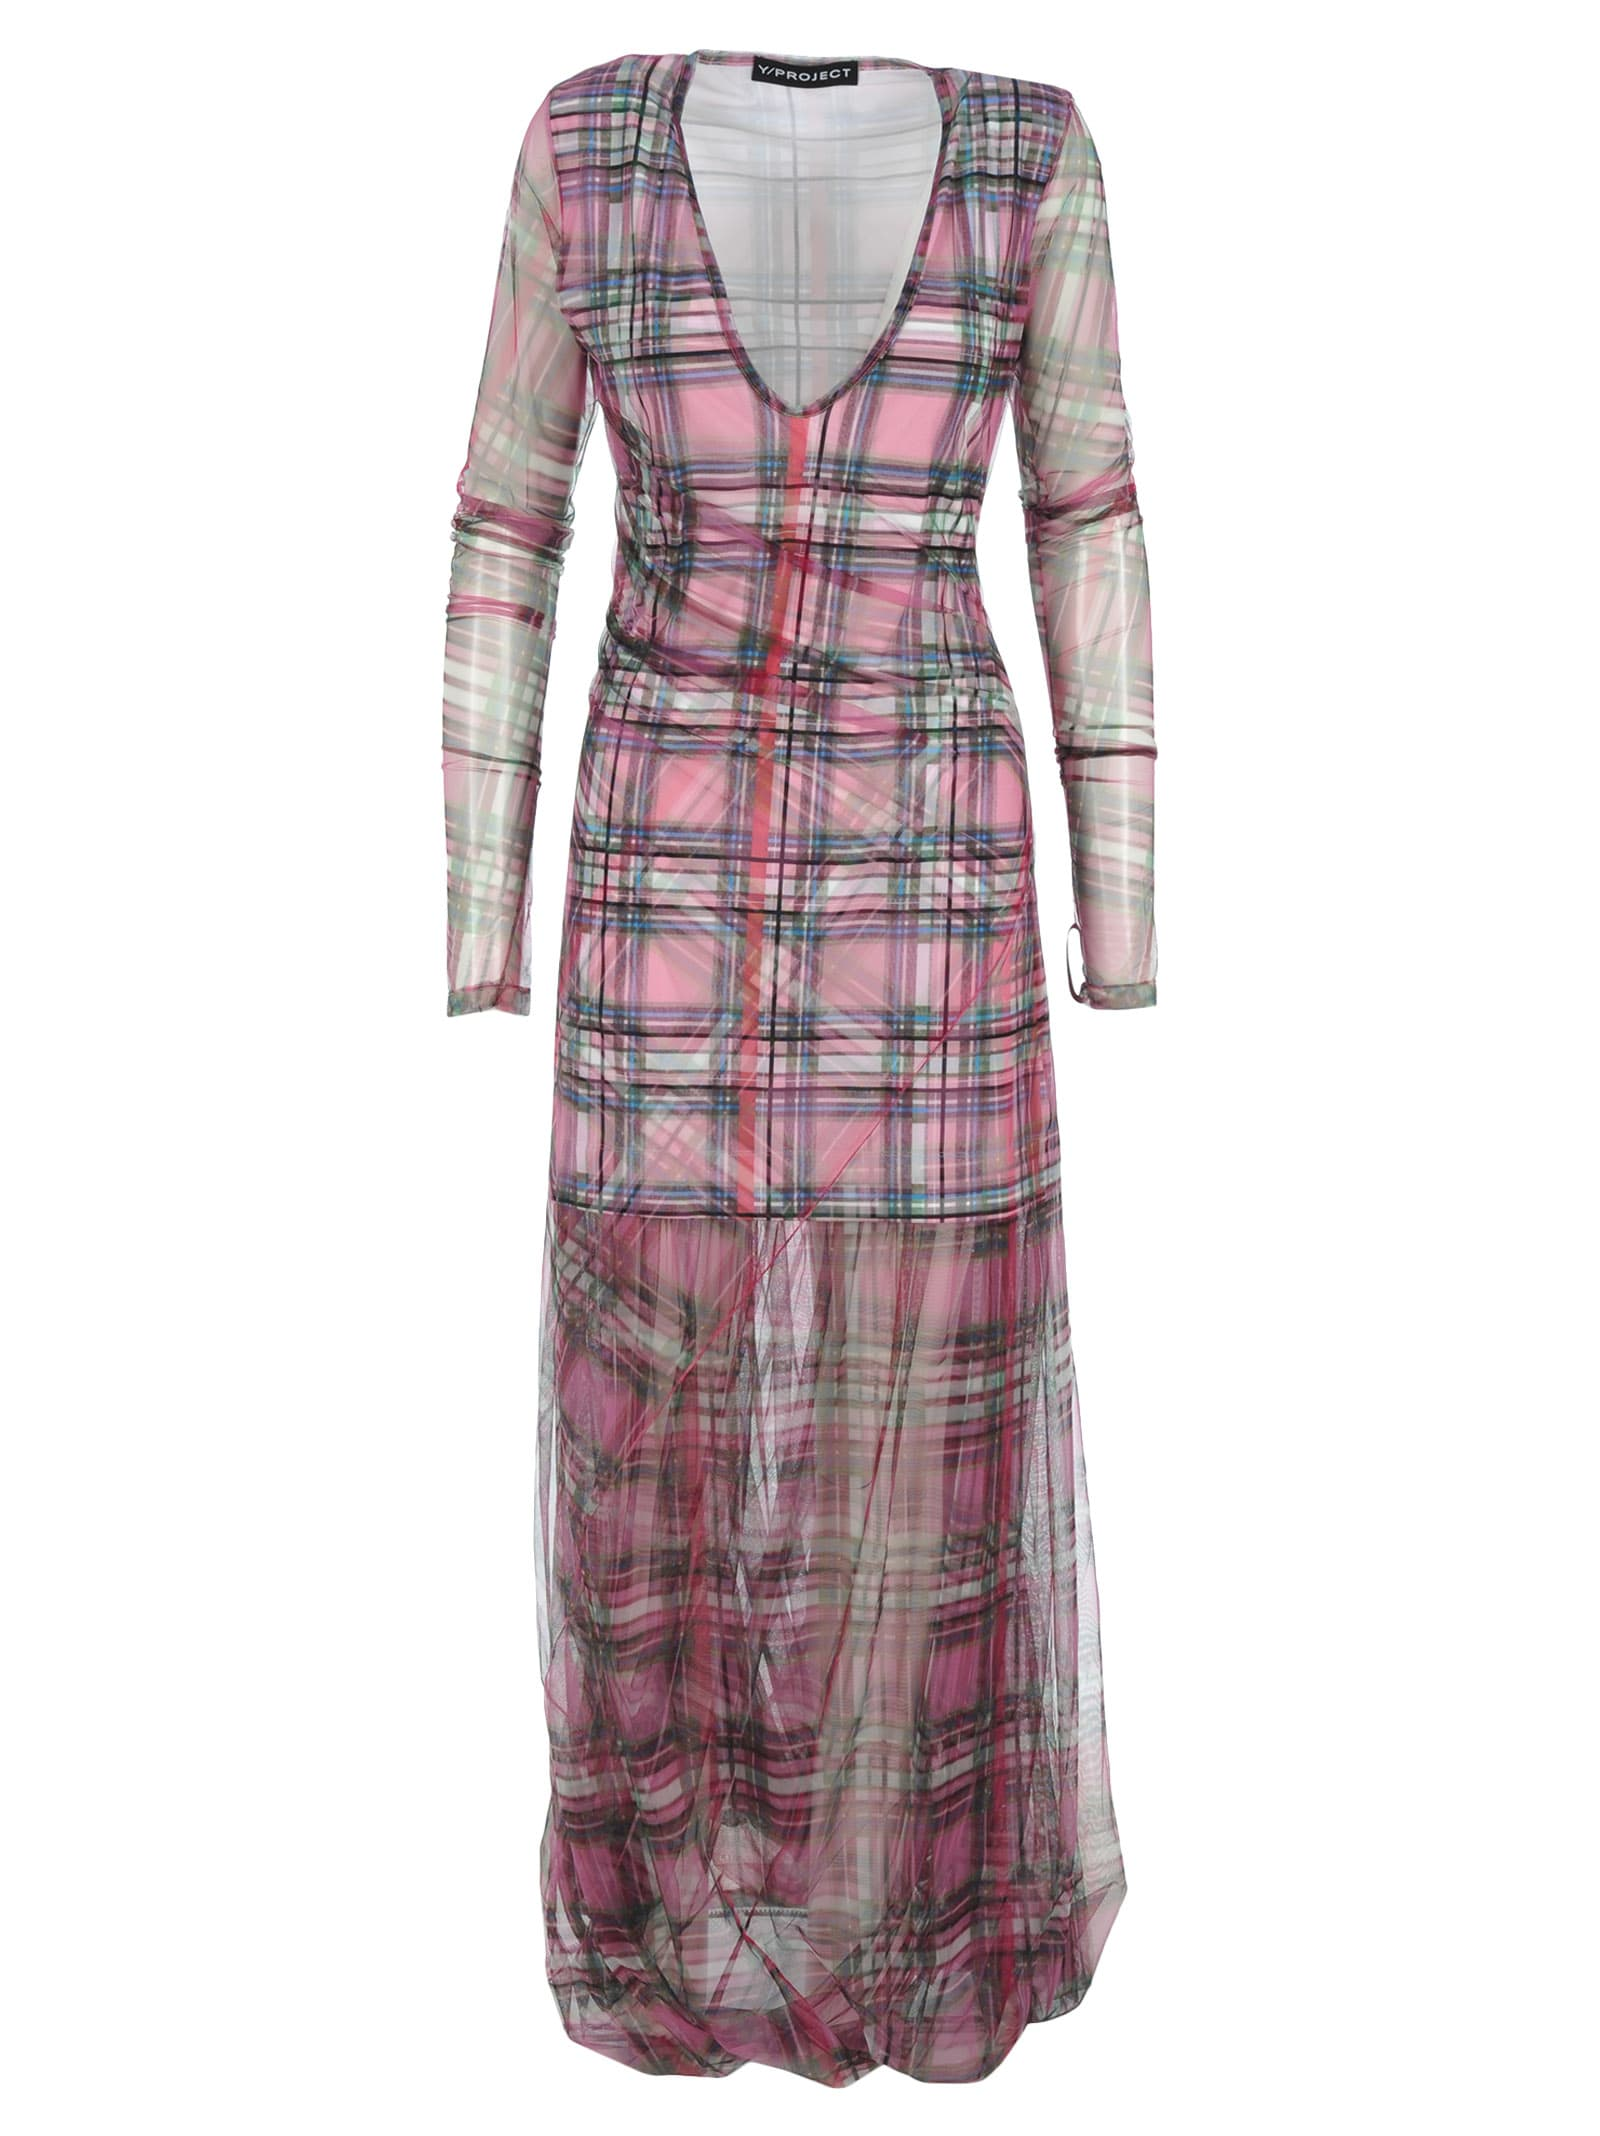 Y & project Plaid Dress